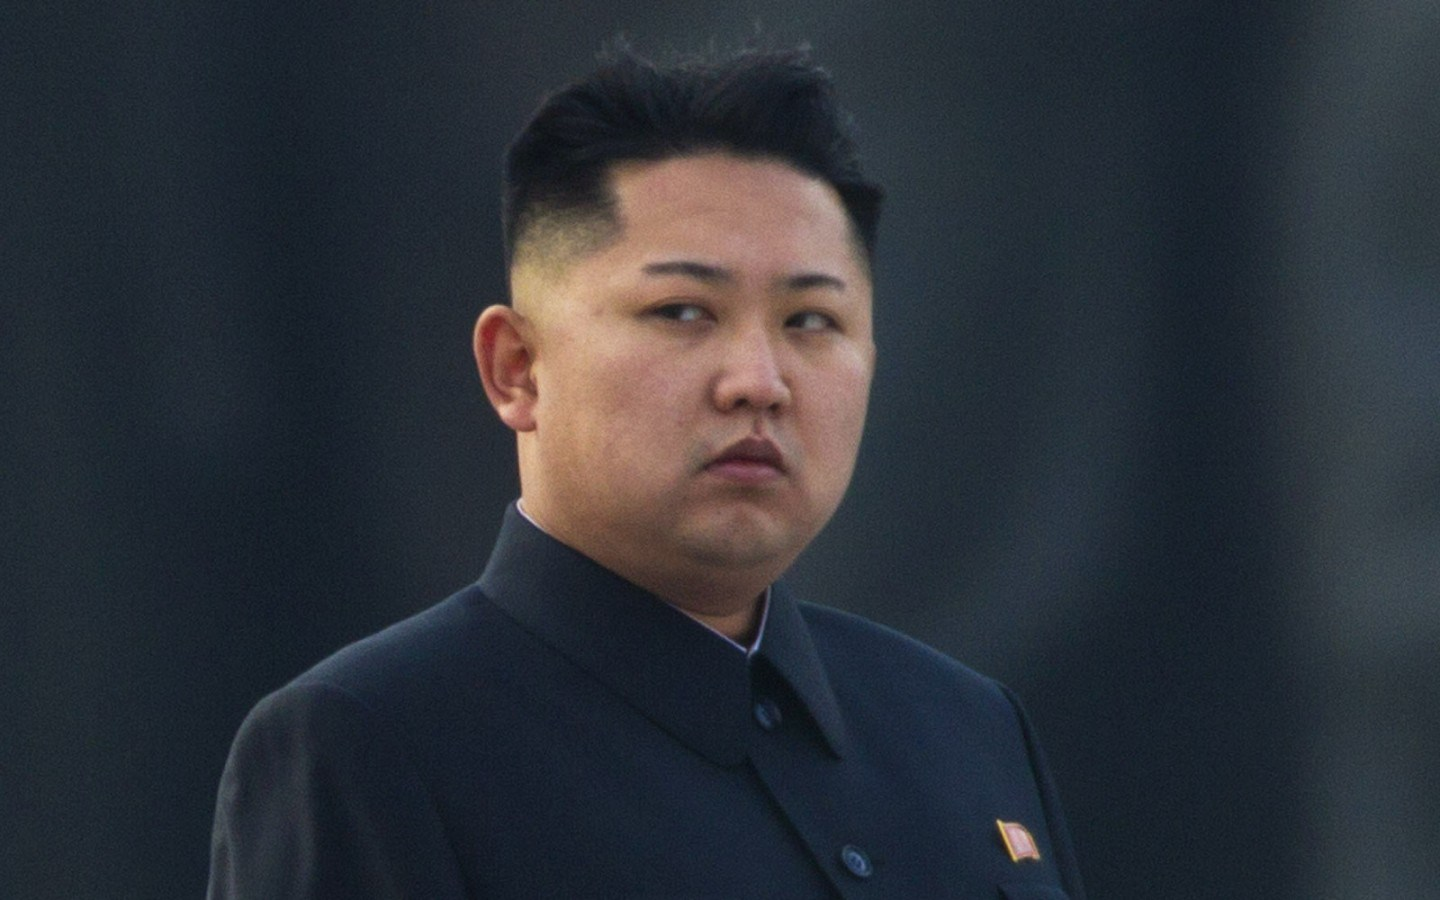 https://lasillarotarm.blob.core.windows.net.optimalcdn.com/images/2017/08/10/kim_jong_un_p.jpg